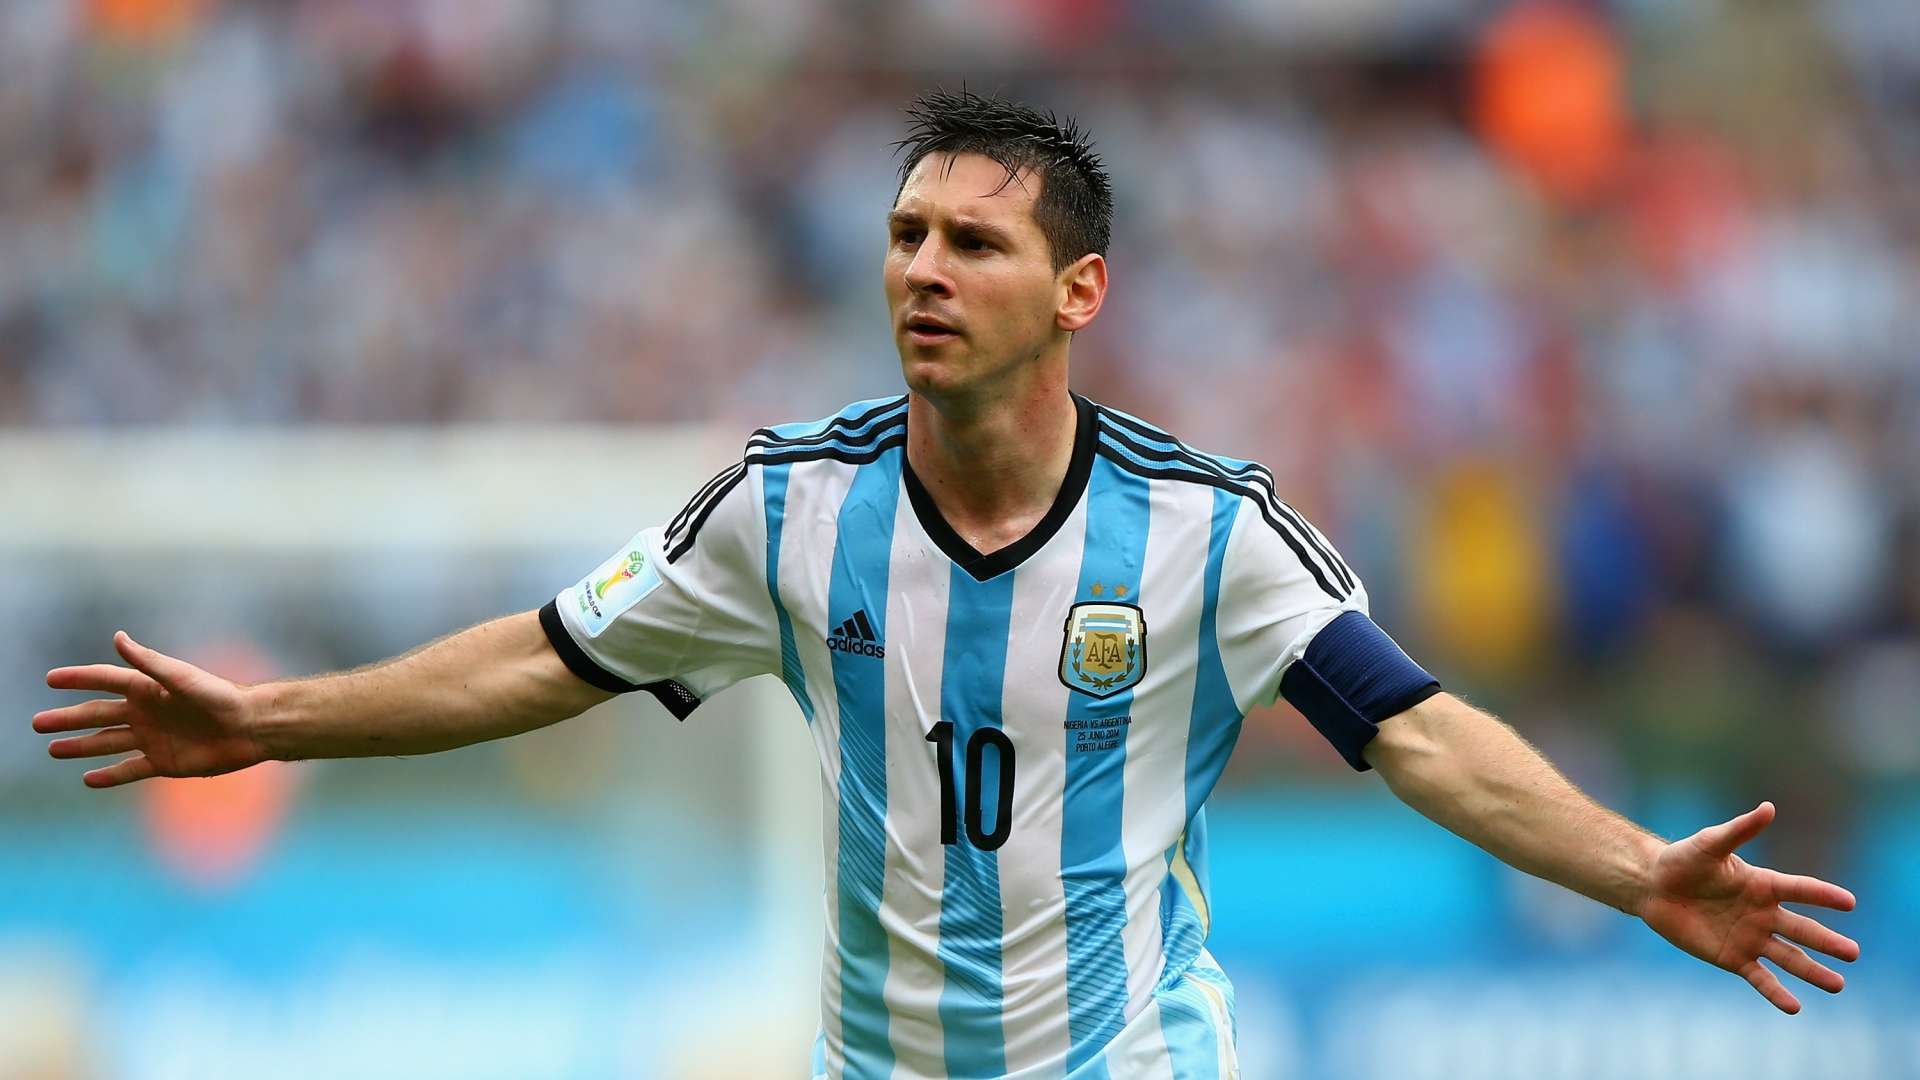 Download now HD Wallpapers Messi 1080p Read description infos and 1920x1080